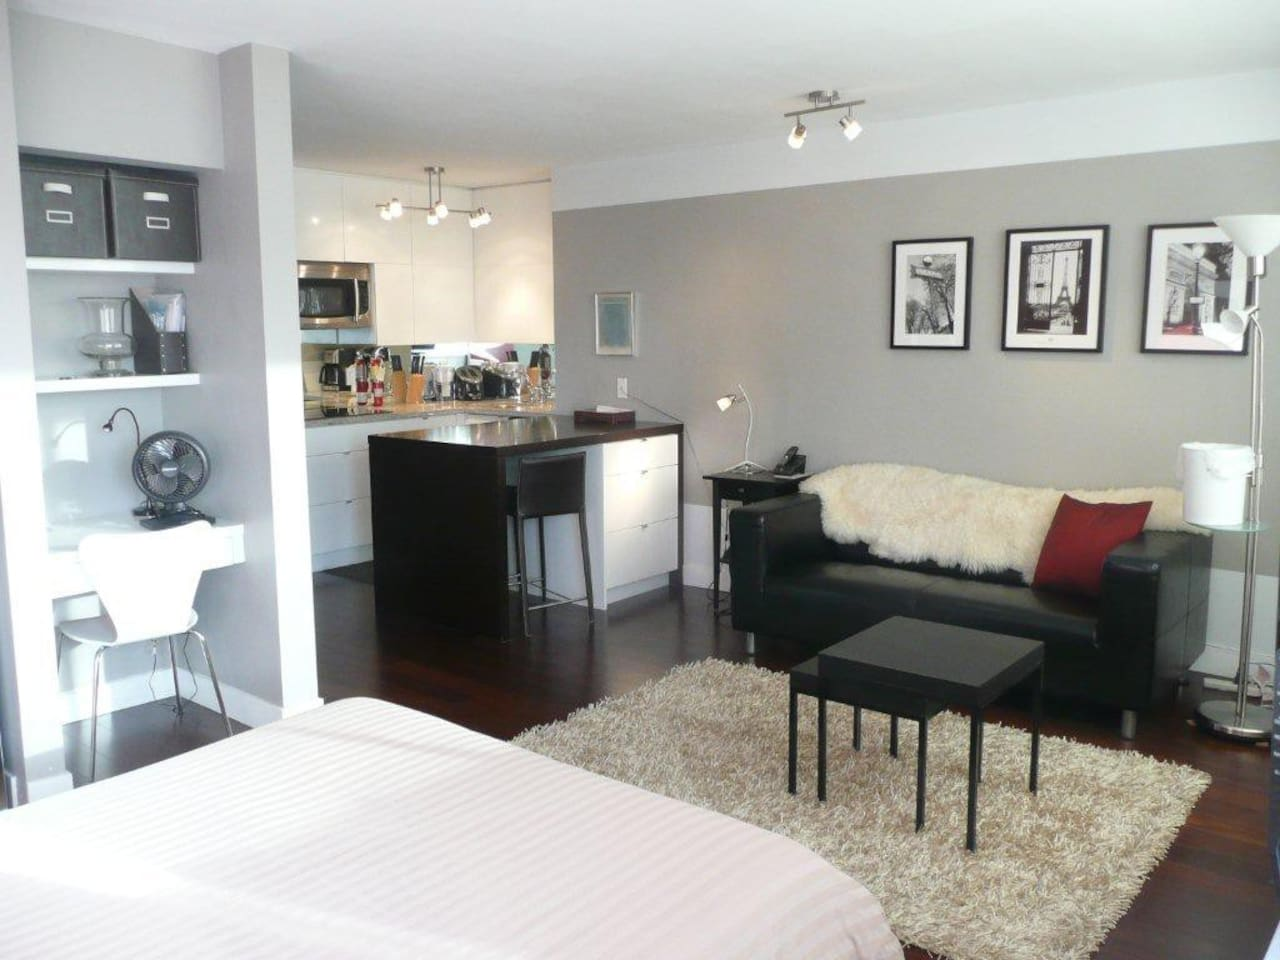 Compact suite has high end finishes and modern decor, and is equipped with everything you need!